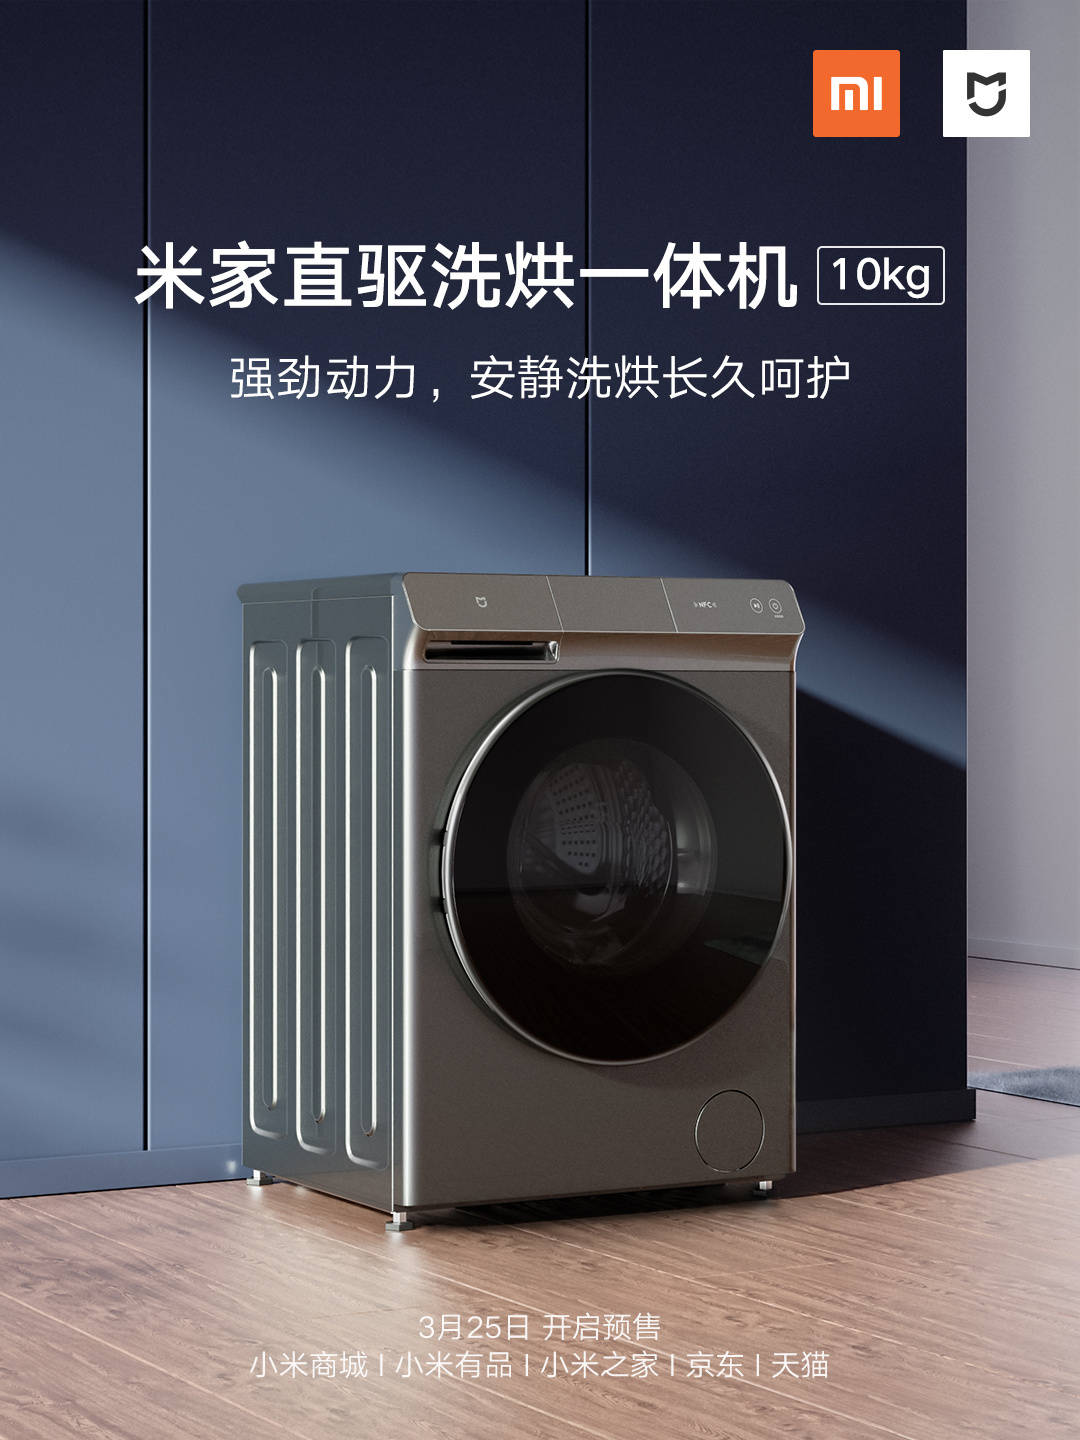 Xiaomi launches two new smart washing machines with integrated dryer. News Xiaomi